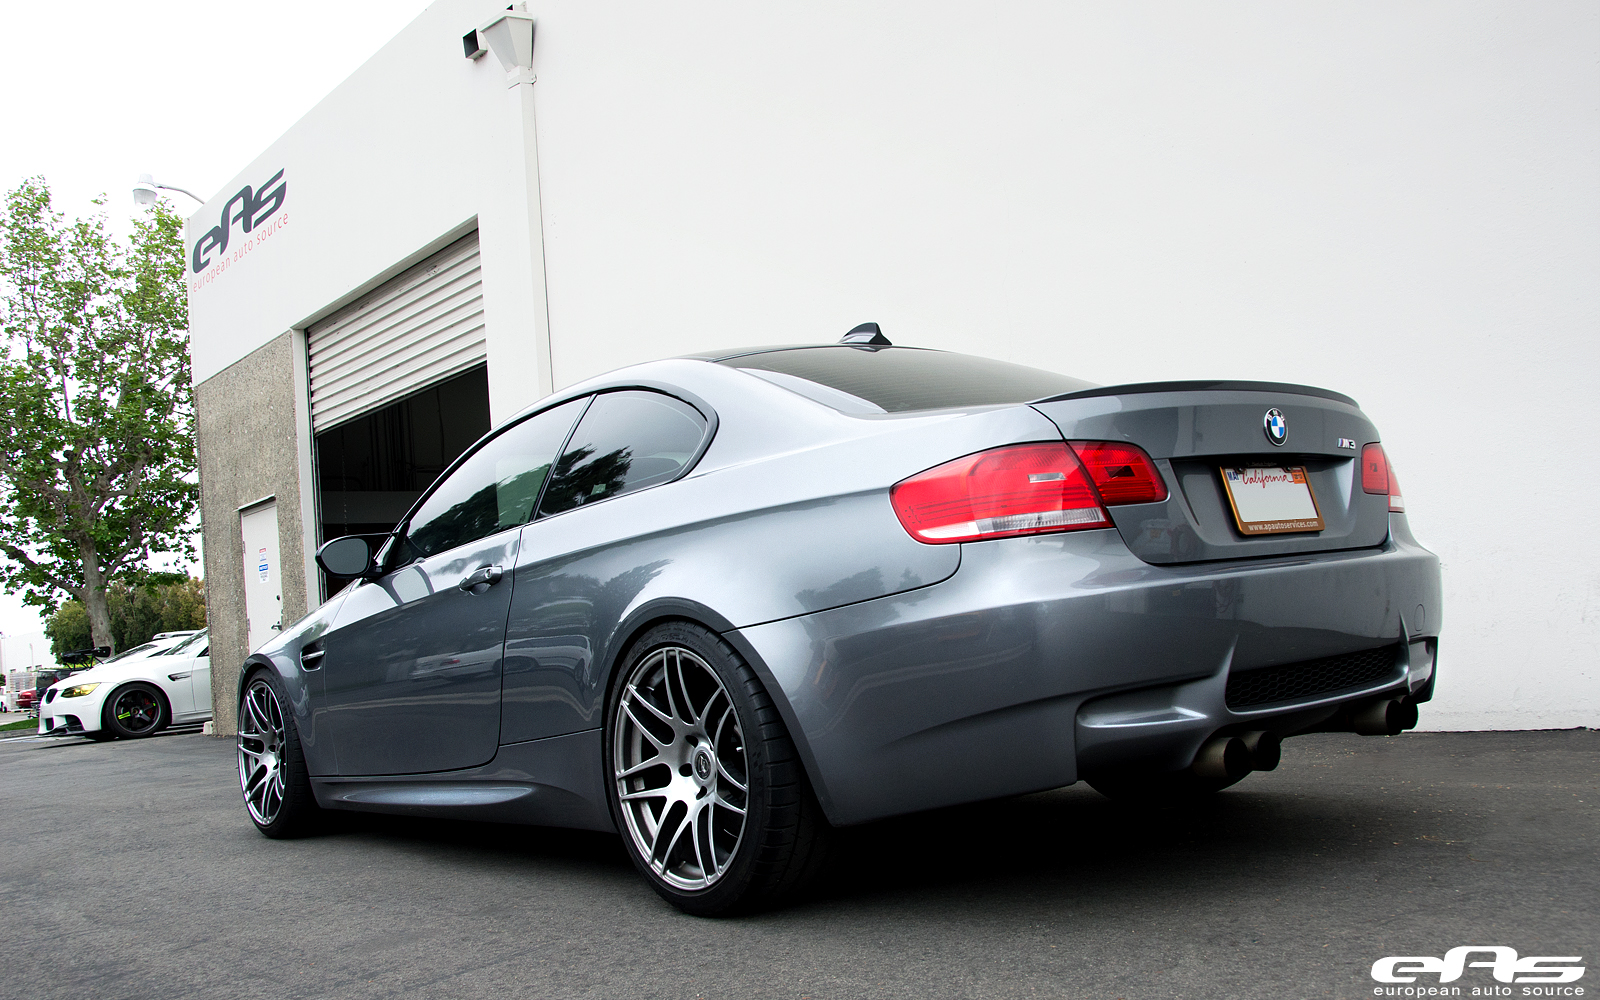 Space Grey Bmw E92 M3 Climbs On Kw Suspension At Eas